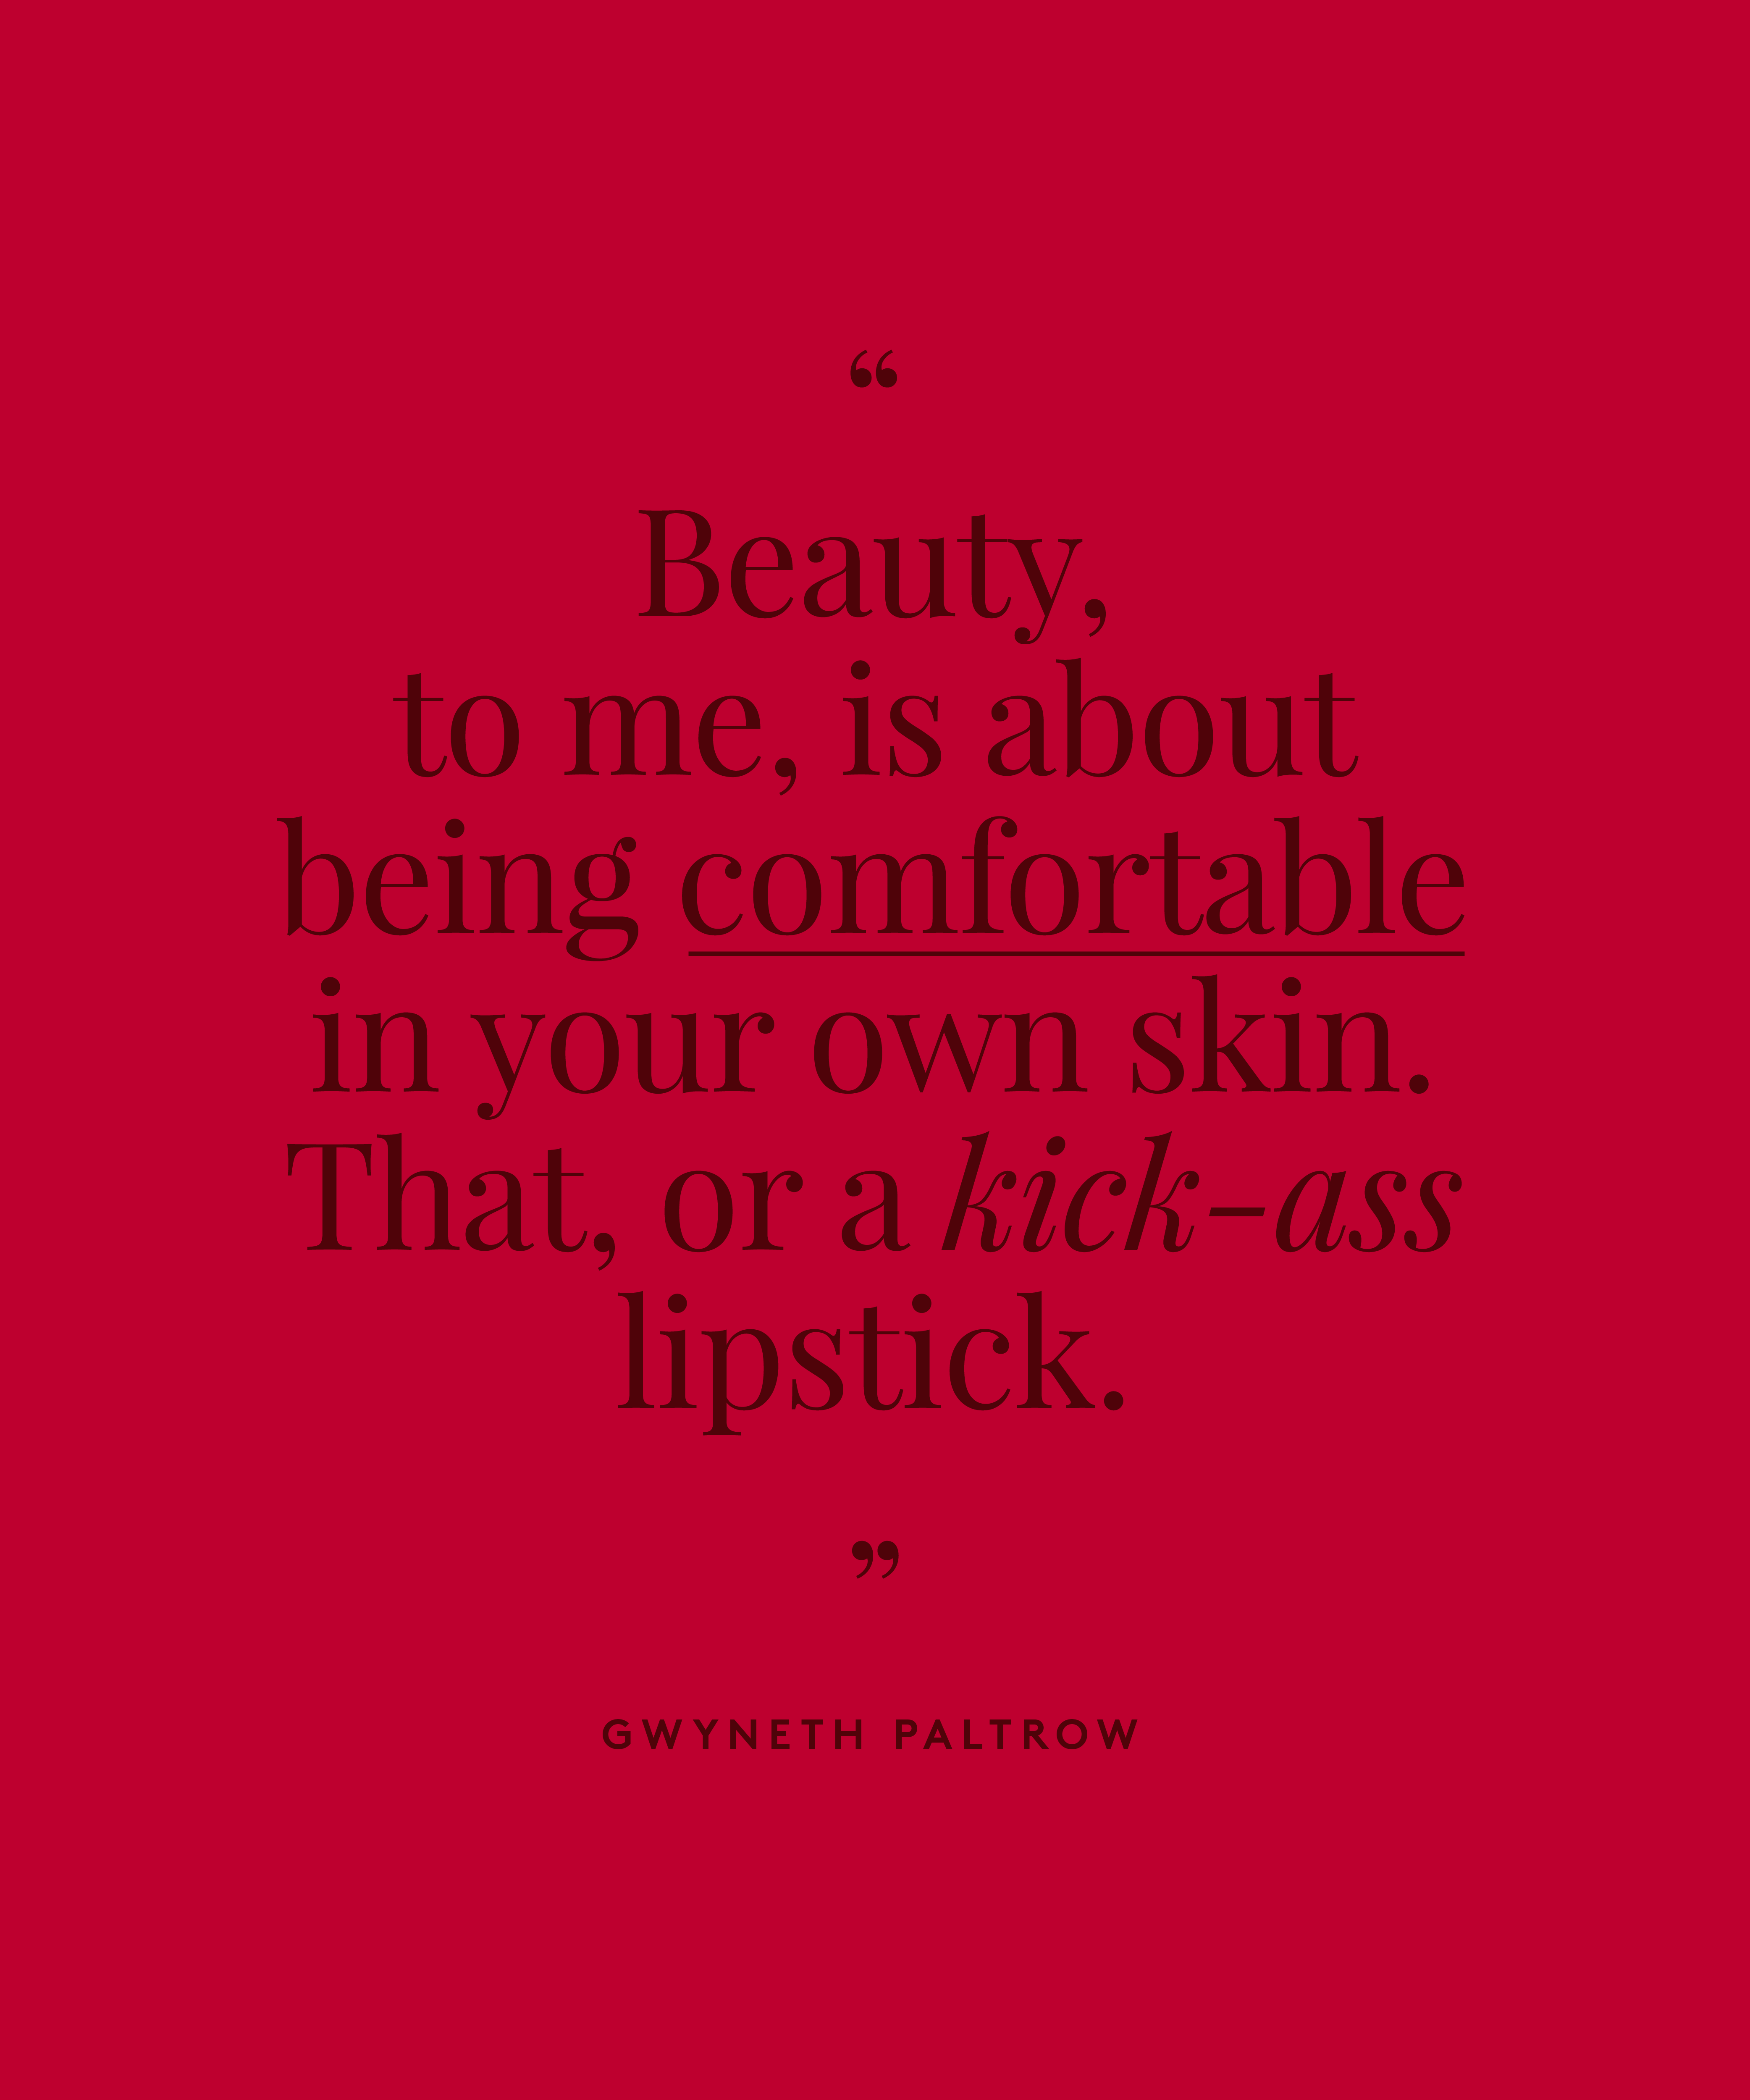 Best Lipstick Quotes For Your Next Instagram Caption